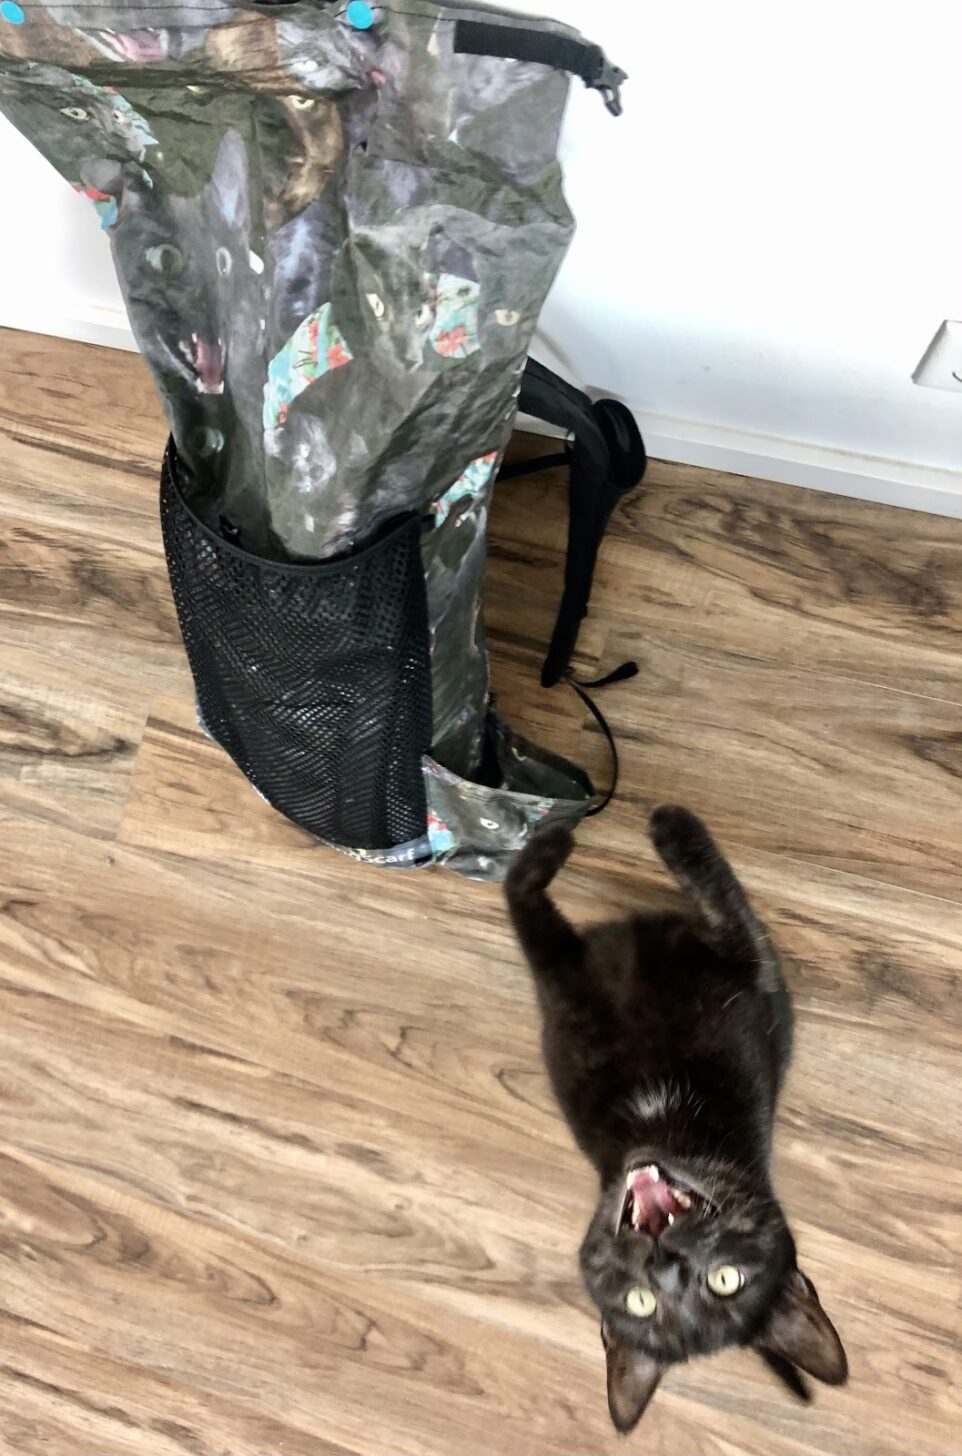 a cat screams at the camera. Next to the cat is a backpack with that cat's face on it.